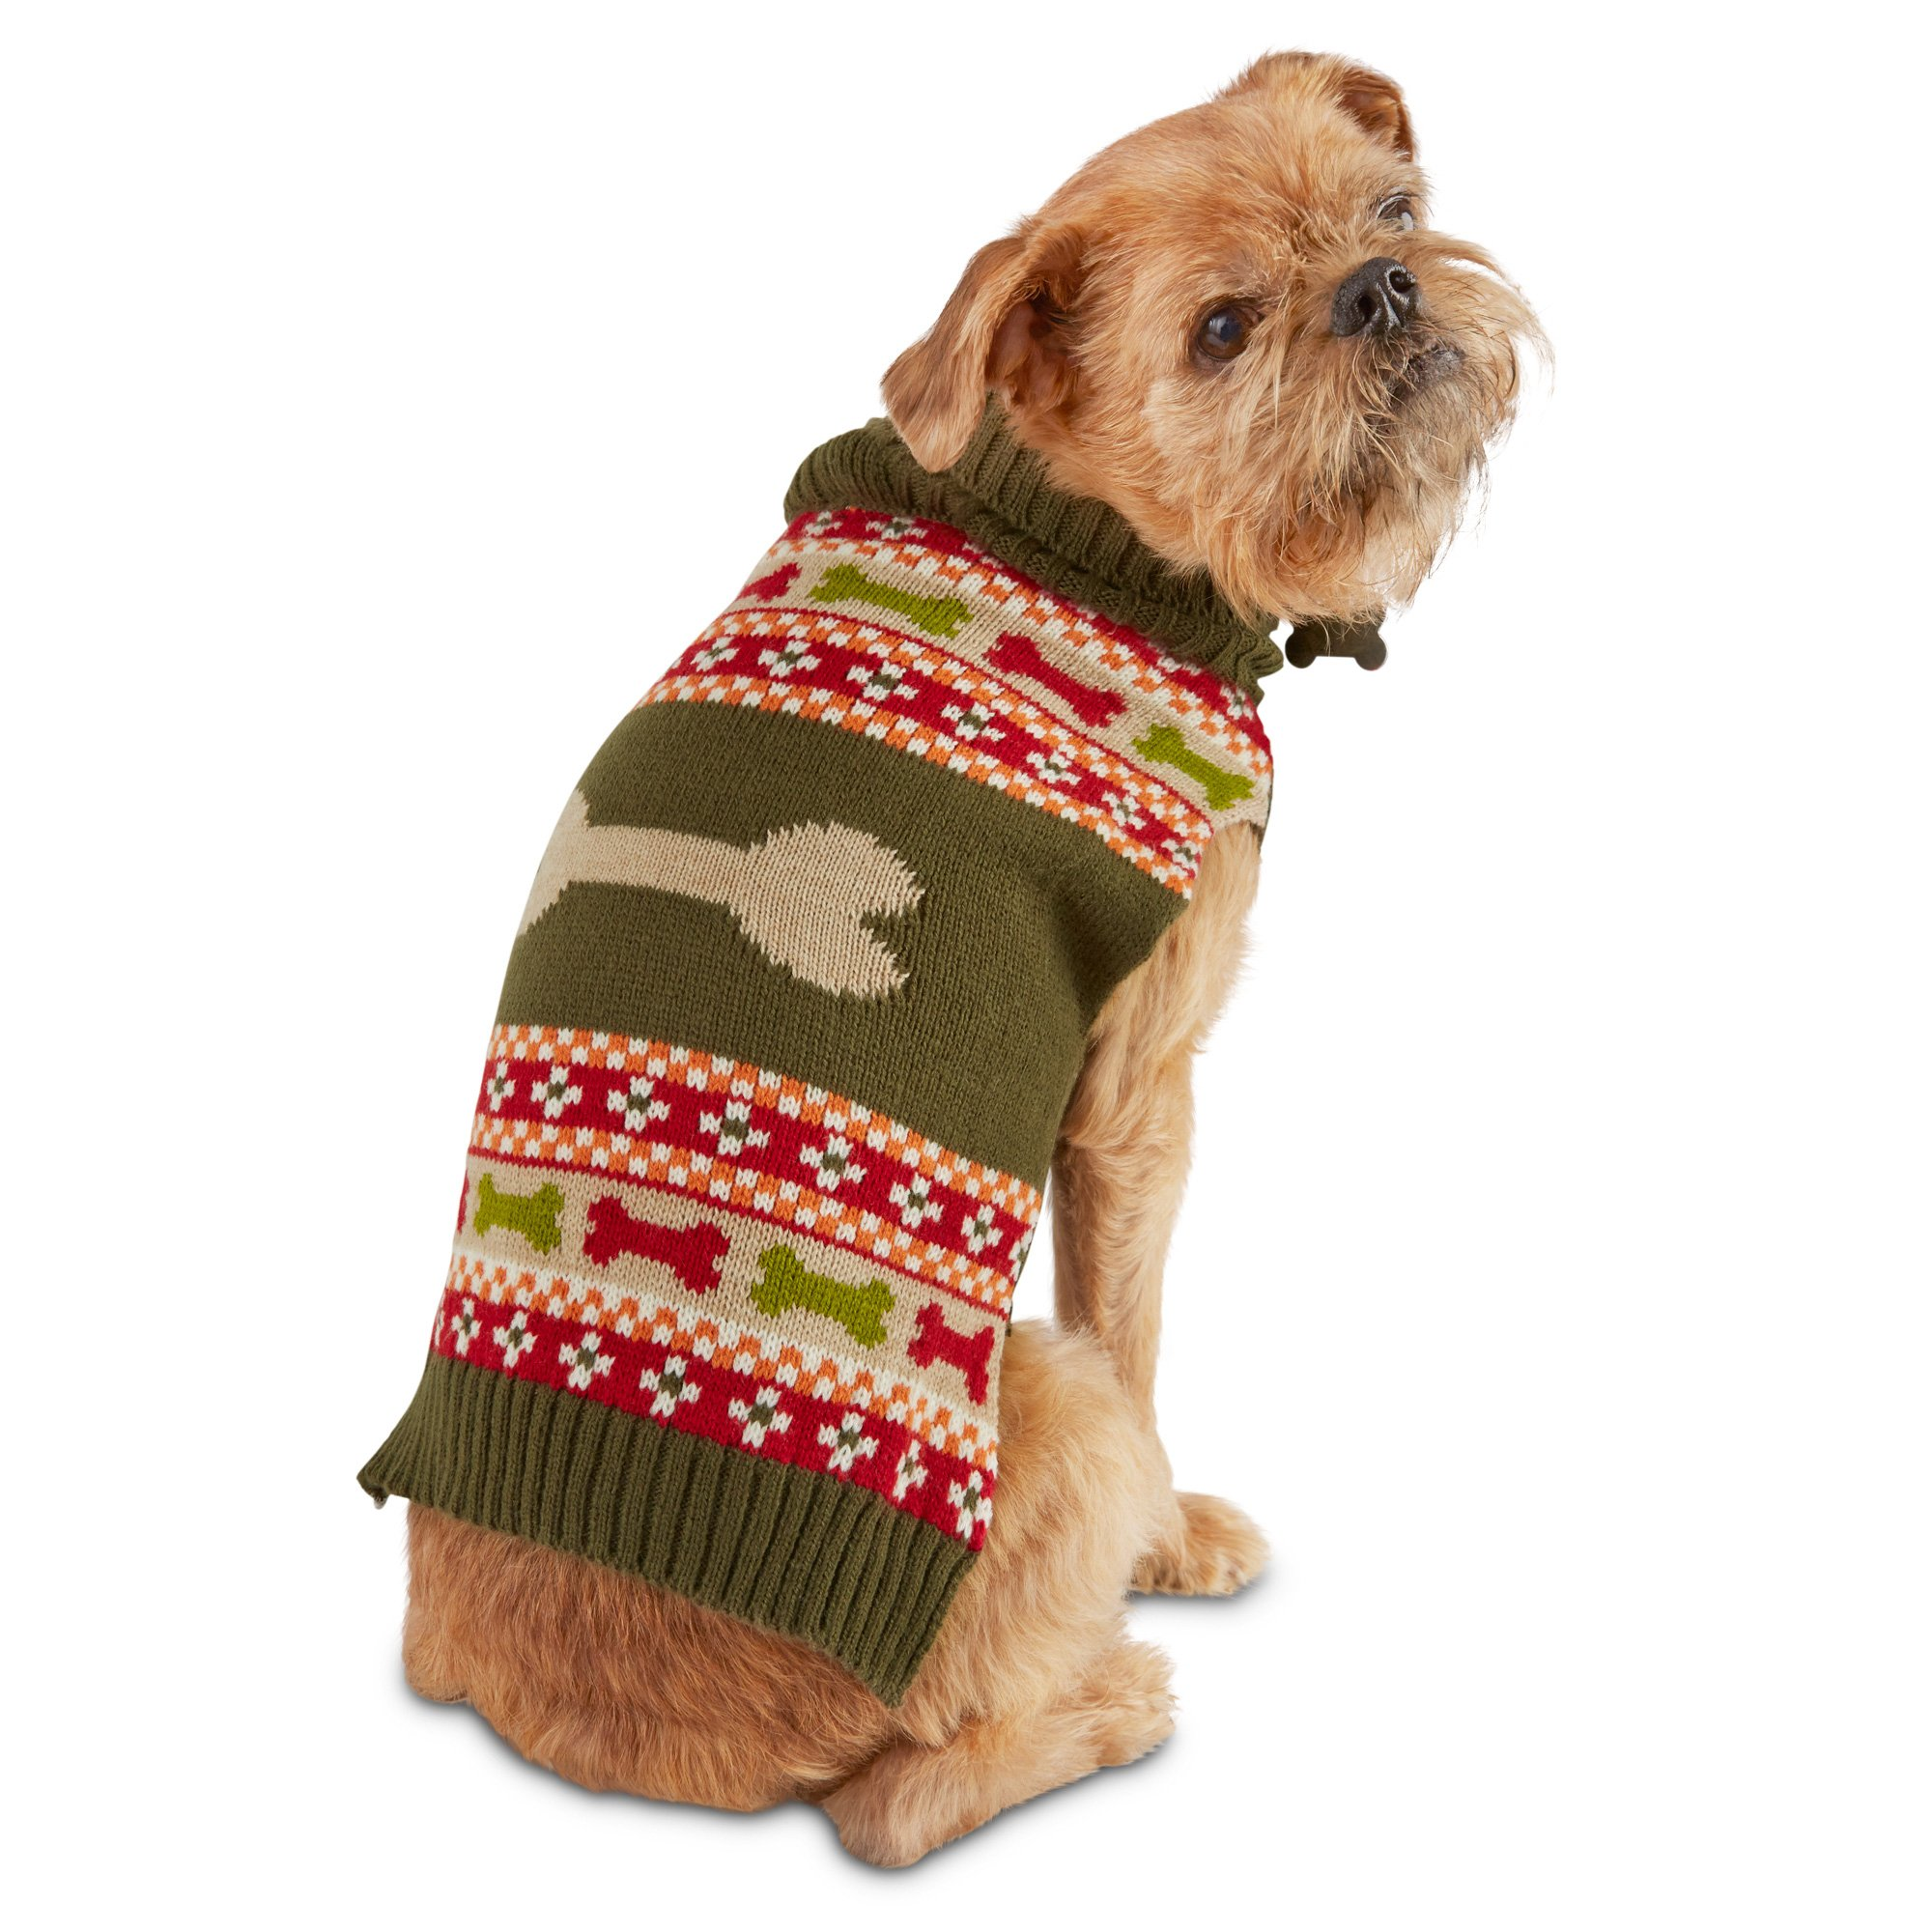 Wag-a-tude Olive Striped Dog Sweater